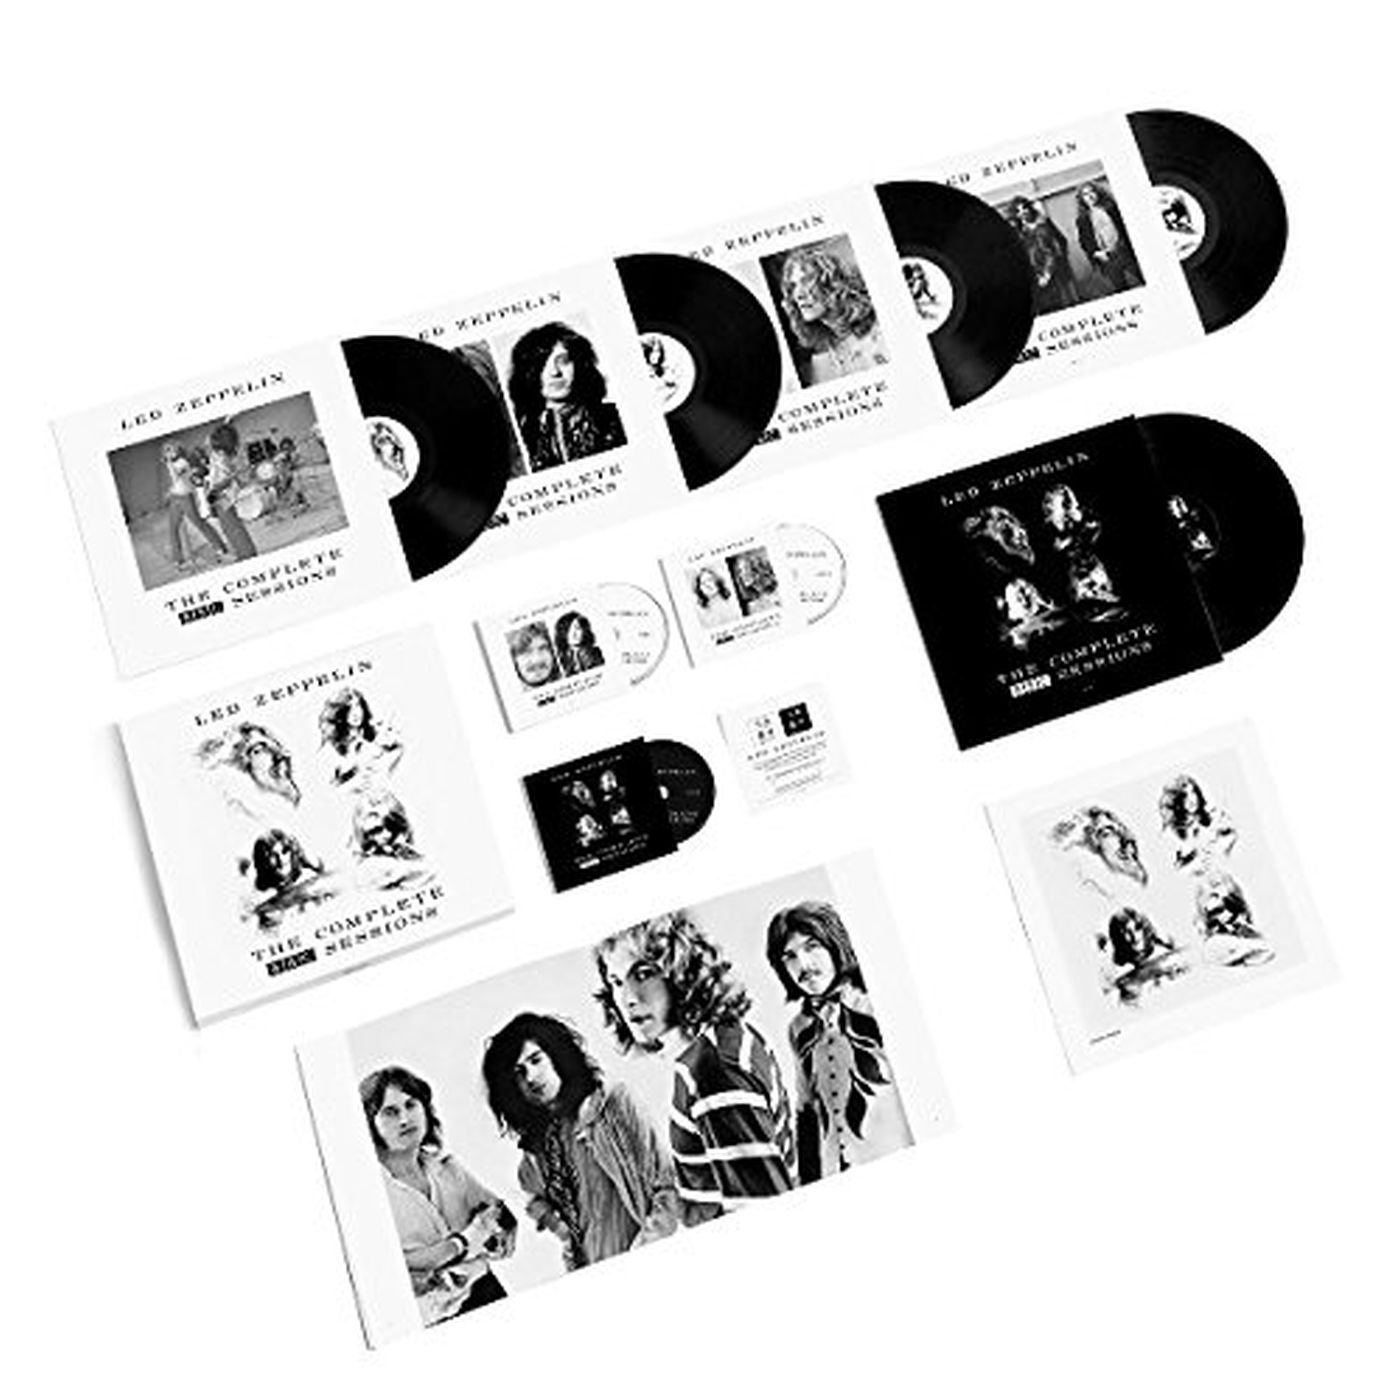 The Complete BBC Sessions Super Deluxe (3CD/5LP 180 Gram Vinyl) by Atlantic (Label)